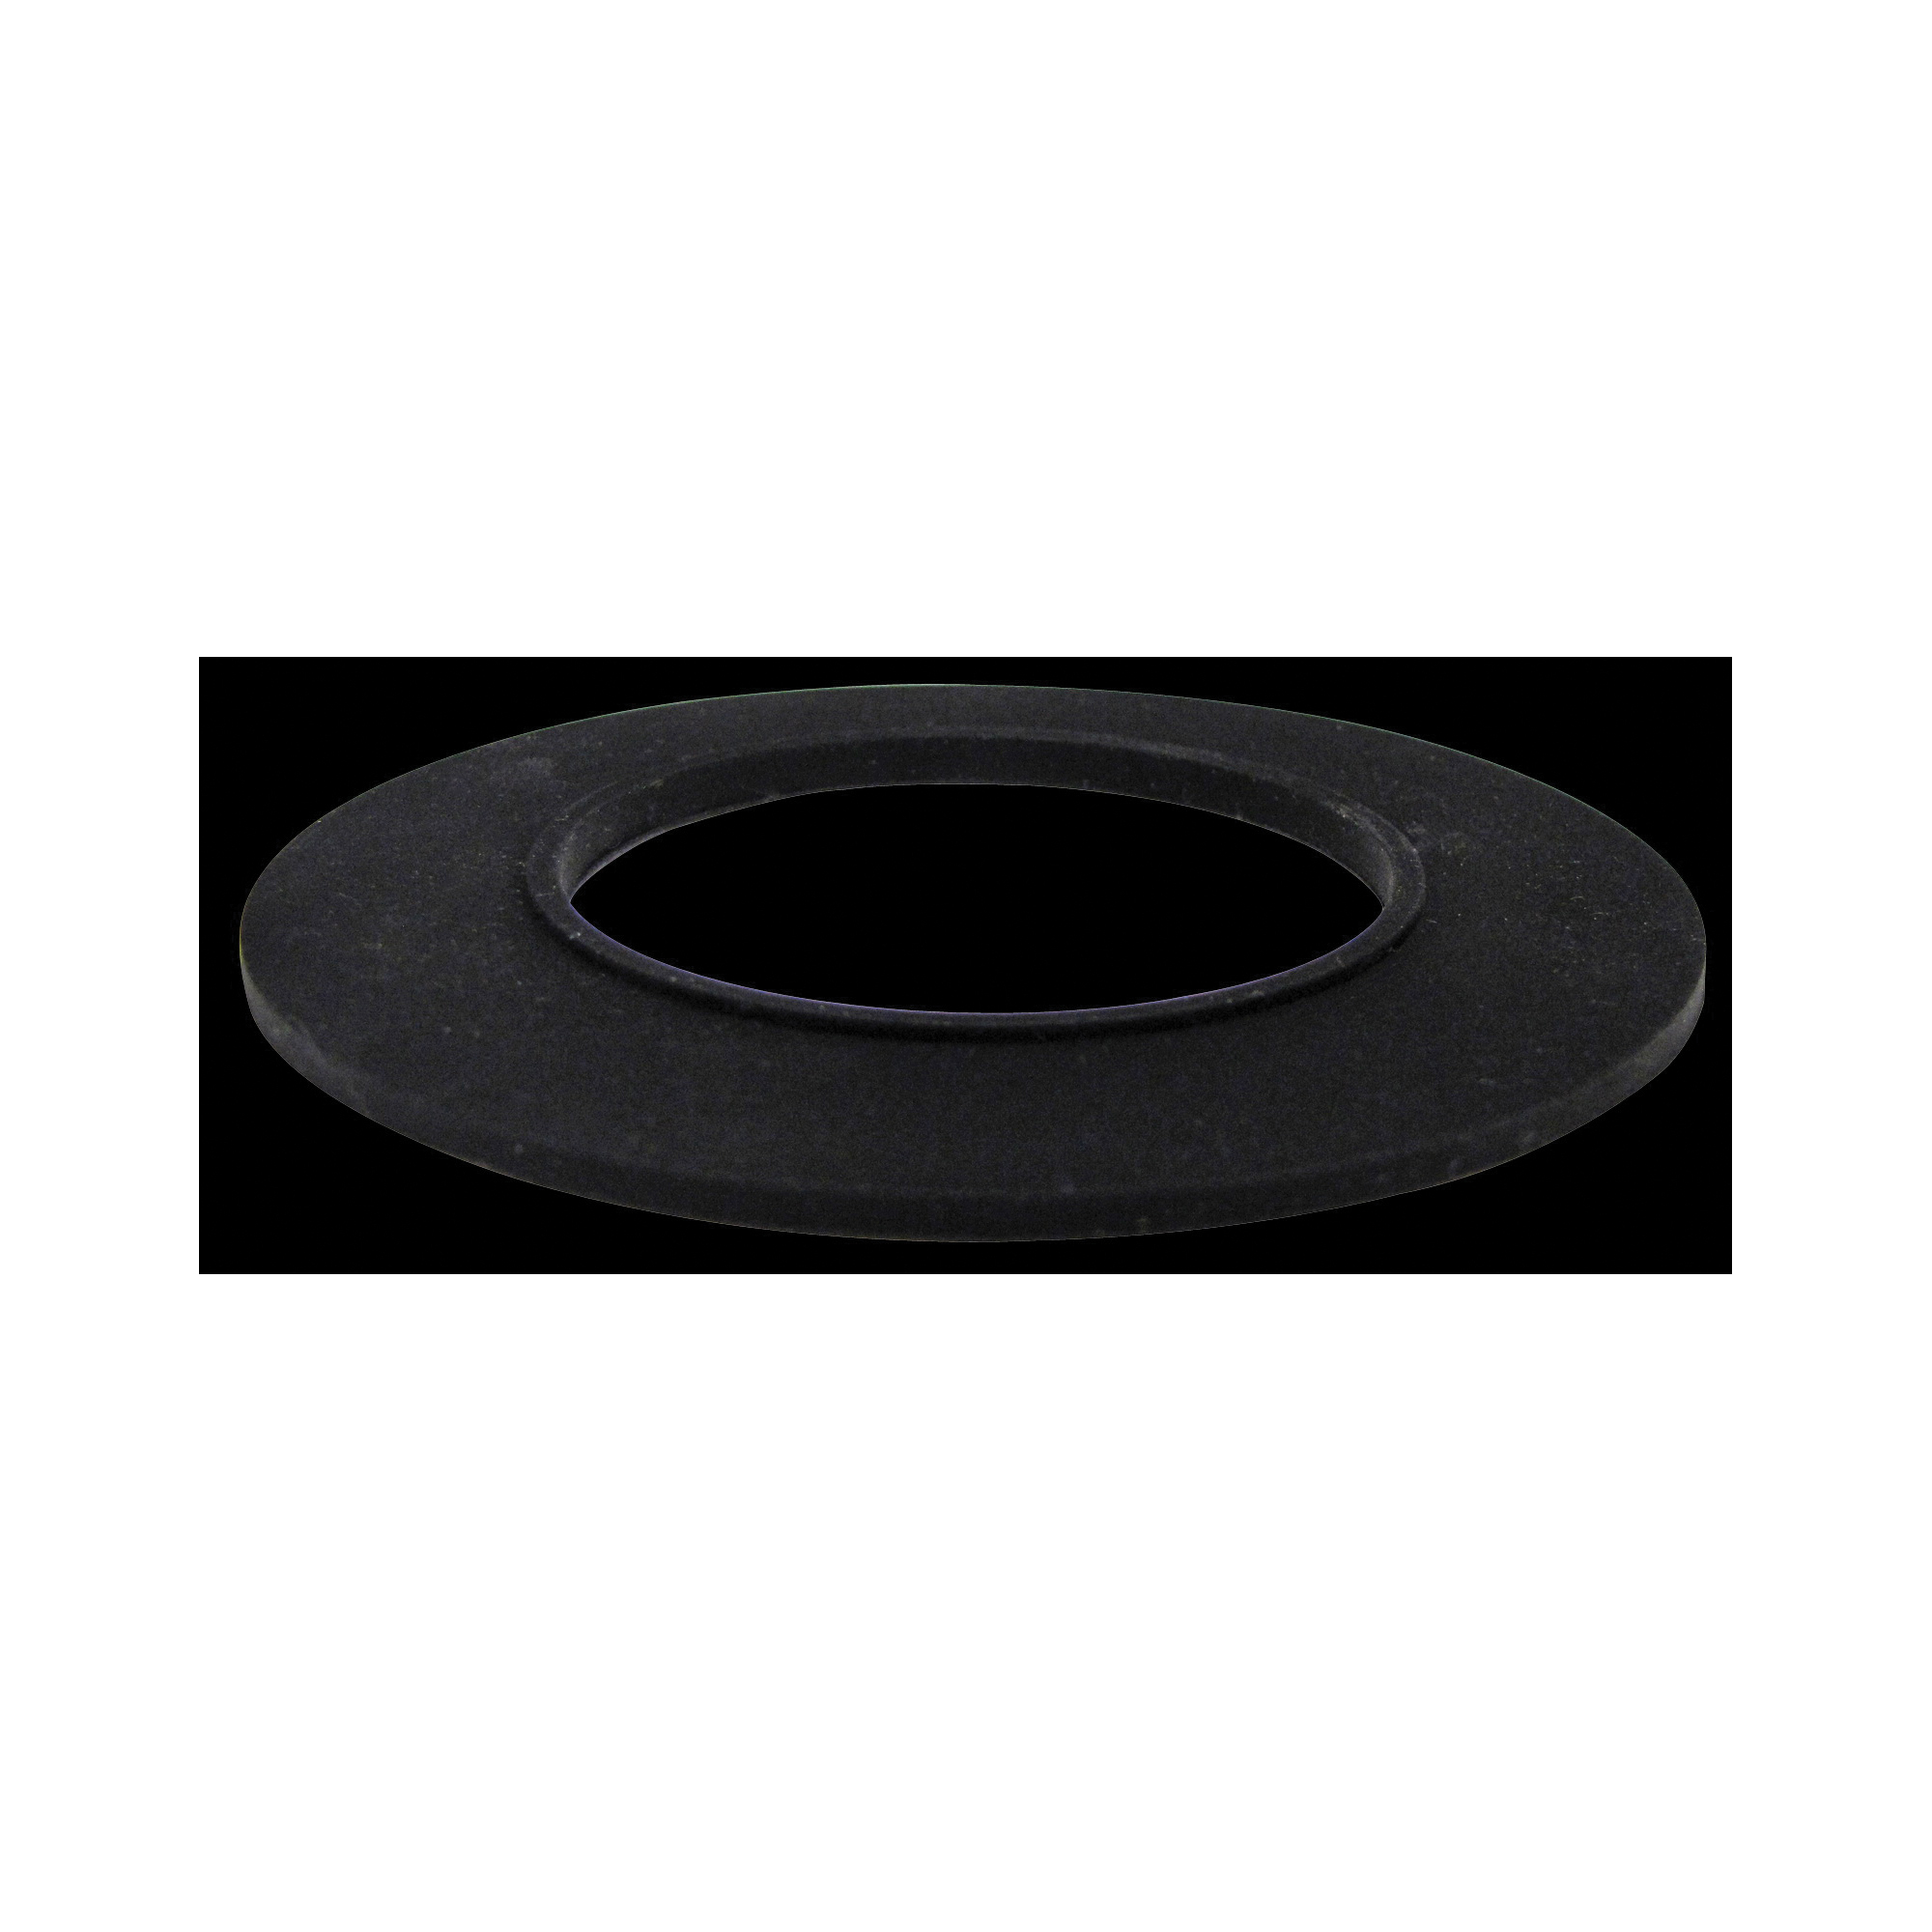 Picture of Keeney K831-2 Flapper Seal, Rubber, Black